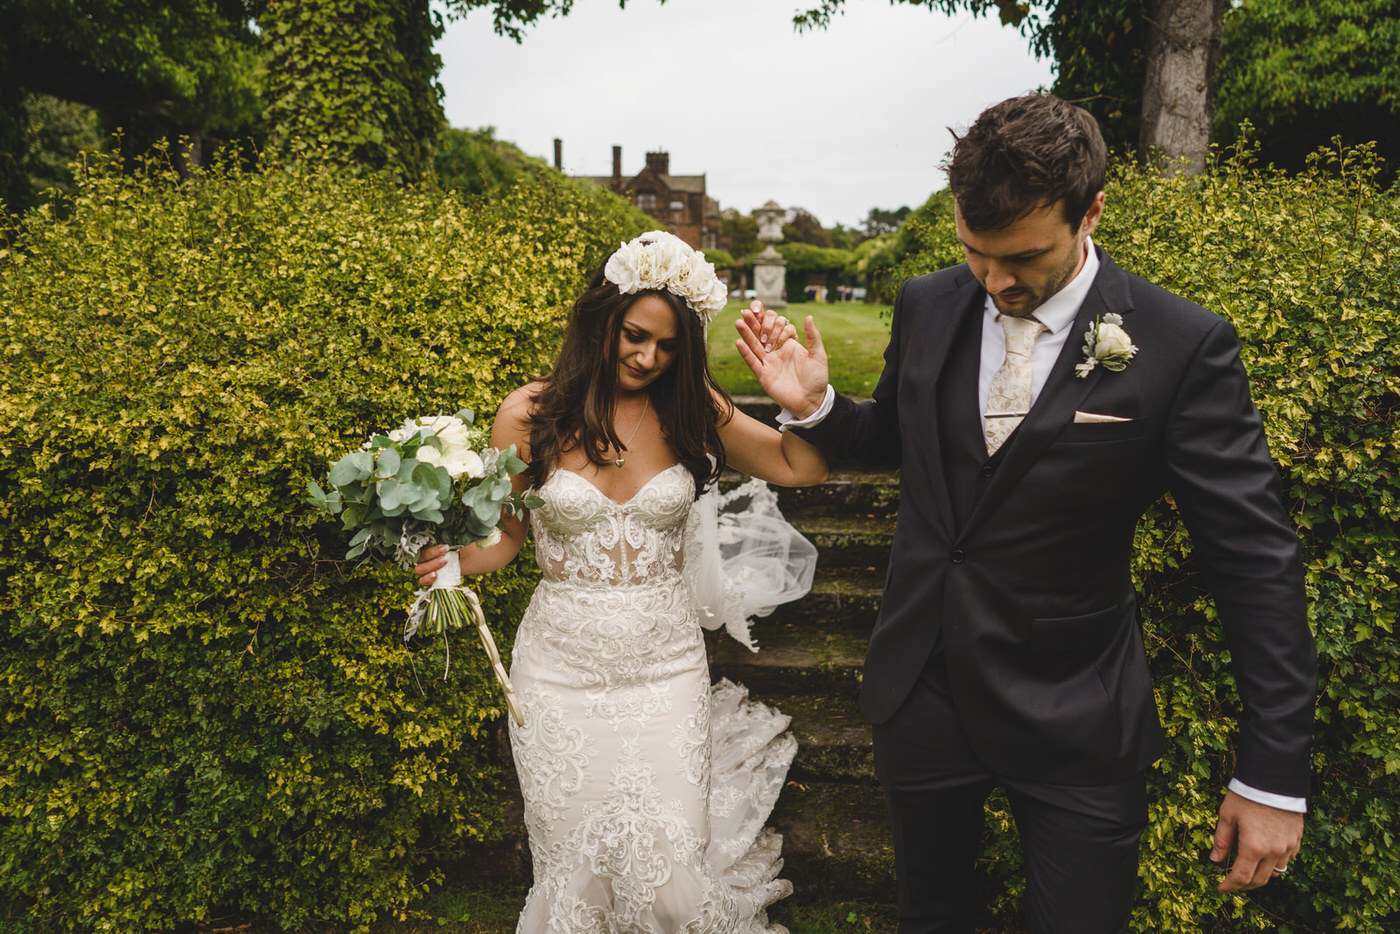 a helping hand from the groom to his beautiful bride as she holds onto her wedding bouquet